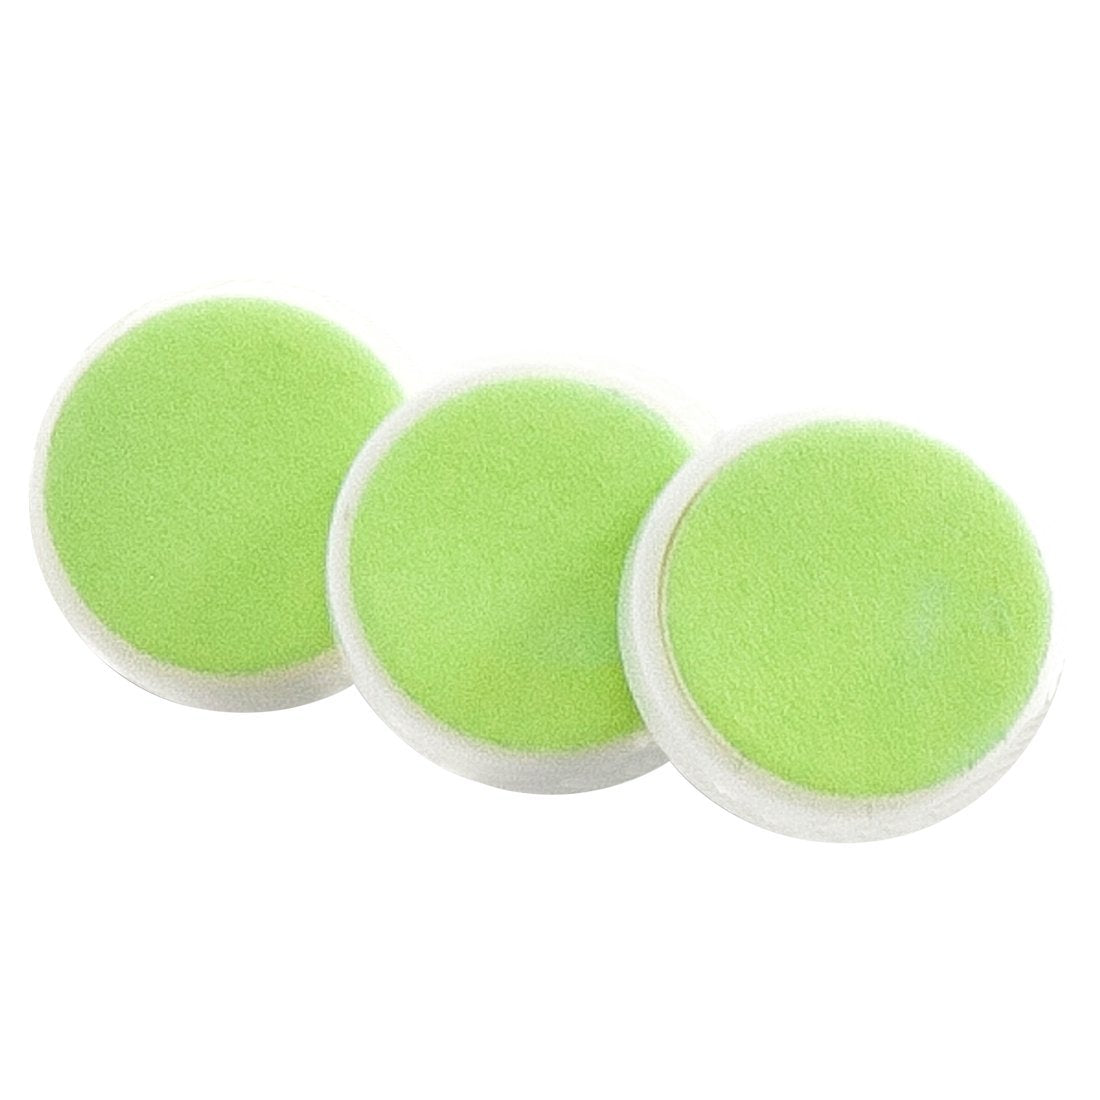 BUZZ-B-electril-nail-trimmer-pads-green